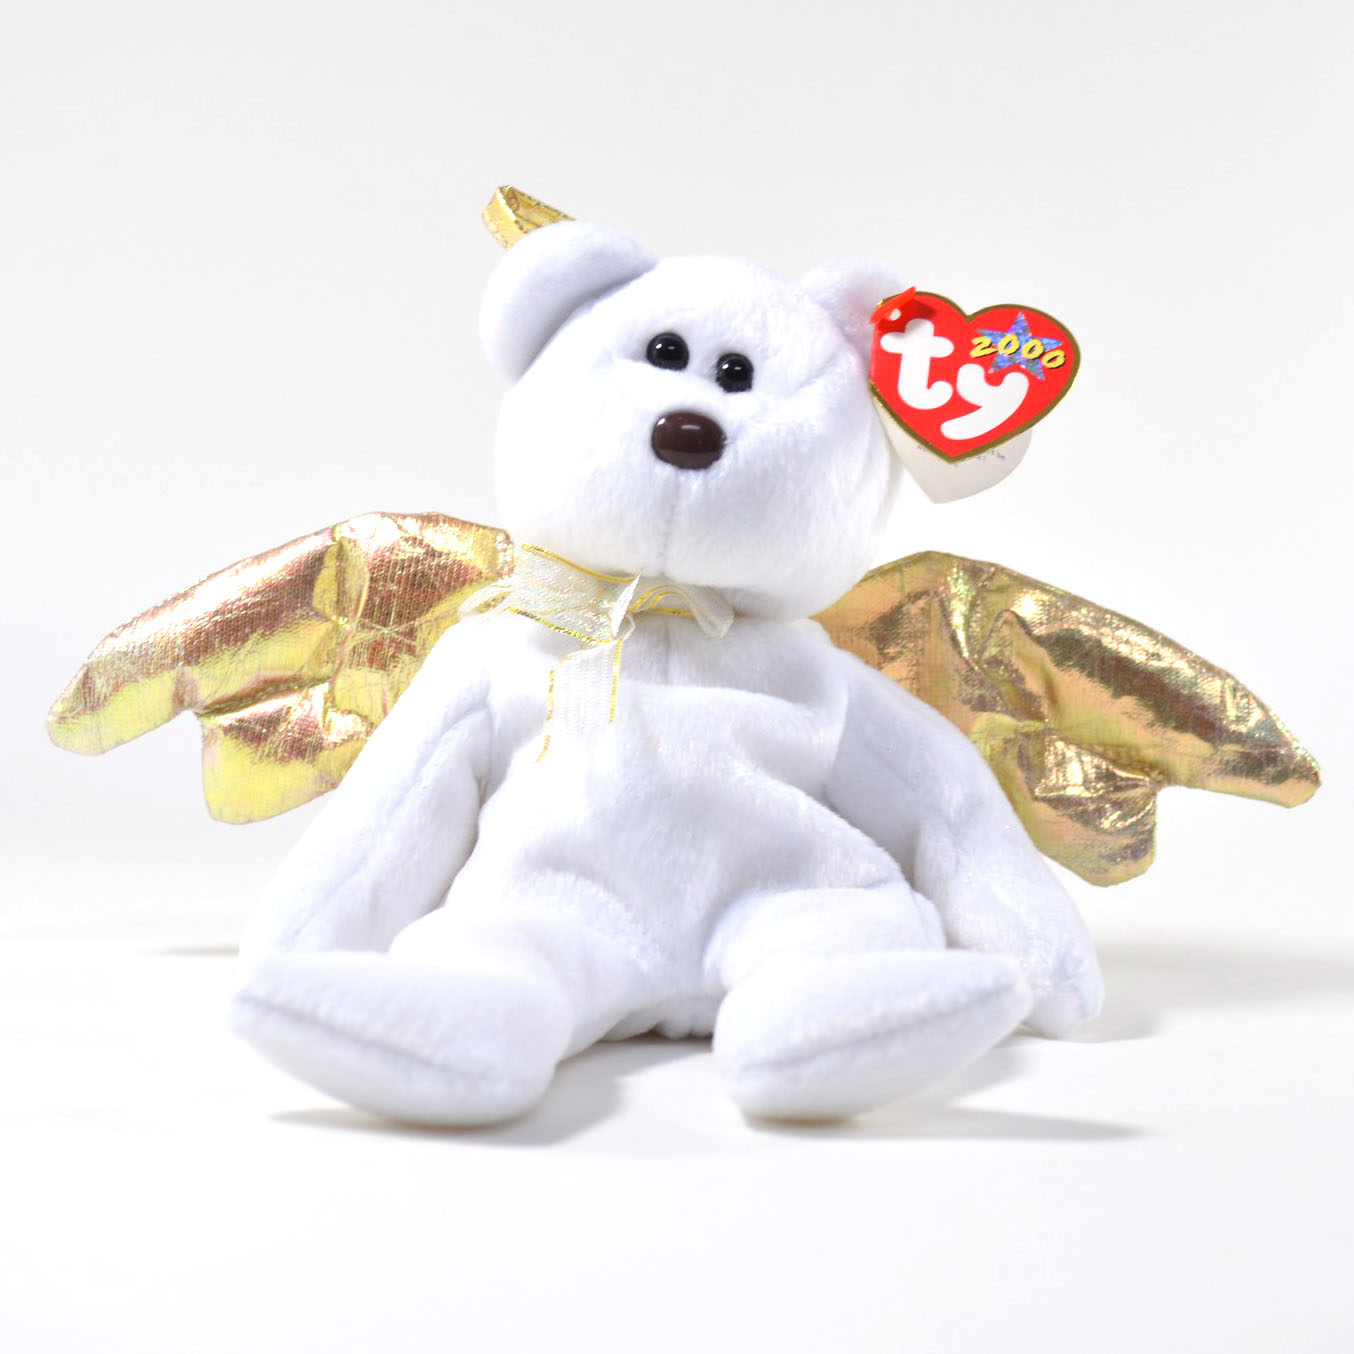 Details about Vintage TY Beanie Baby  Halo II  D.O.B. January 14 b36ee81bf738